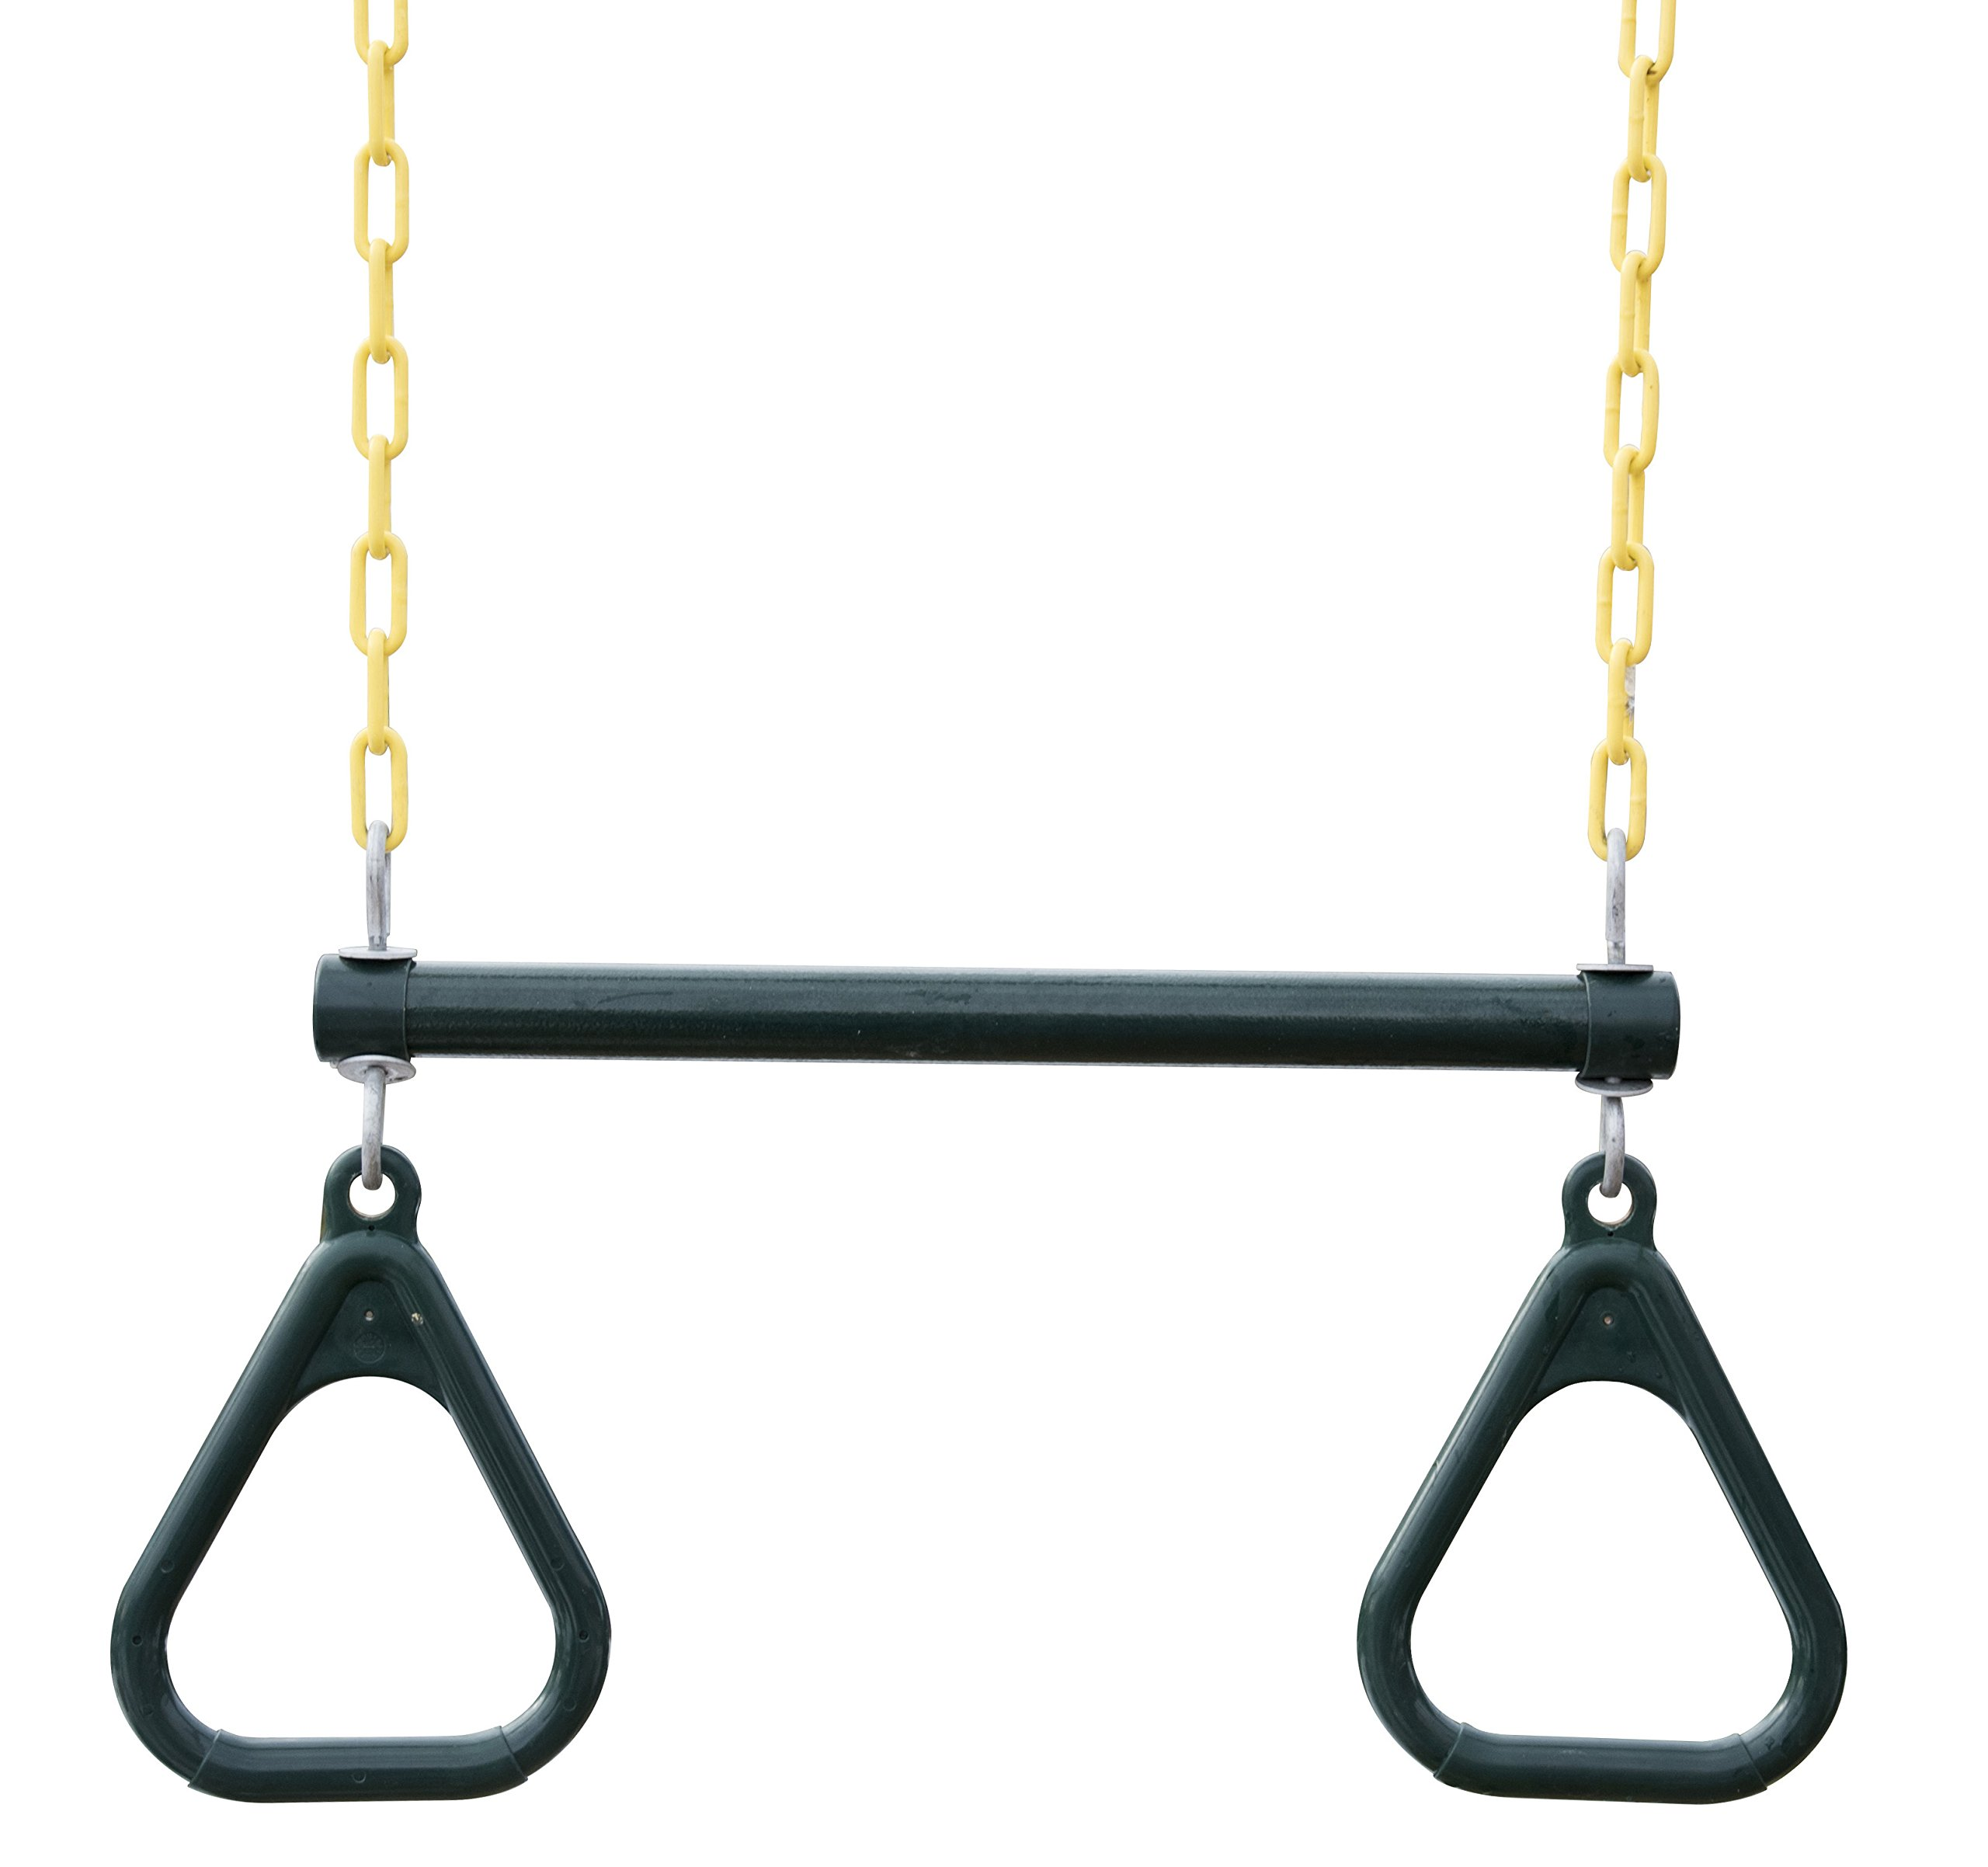 plastic rings bar chains locking coated sq product steel with heavy duty carabiners trapeze